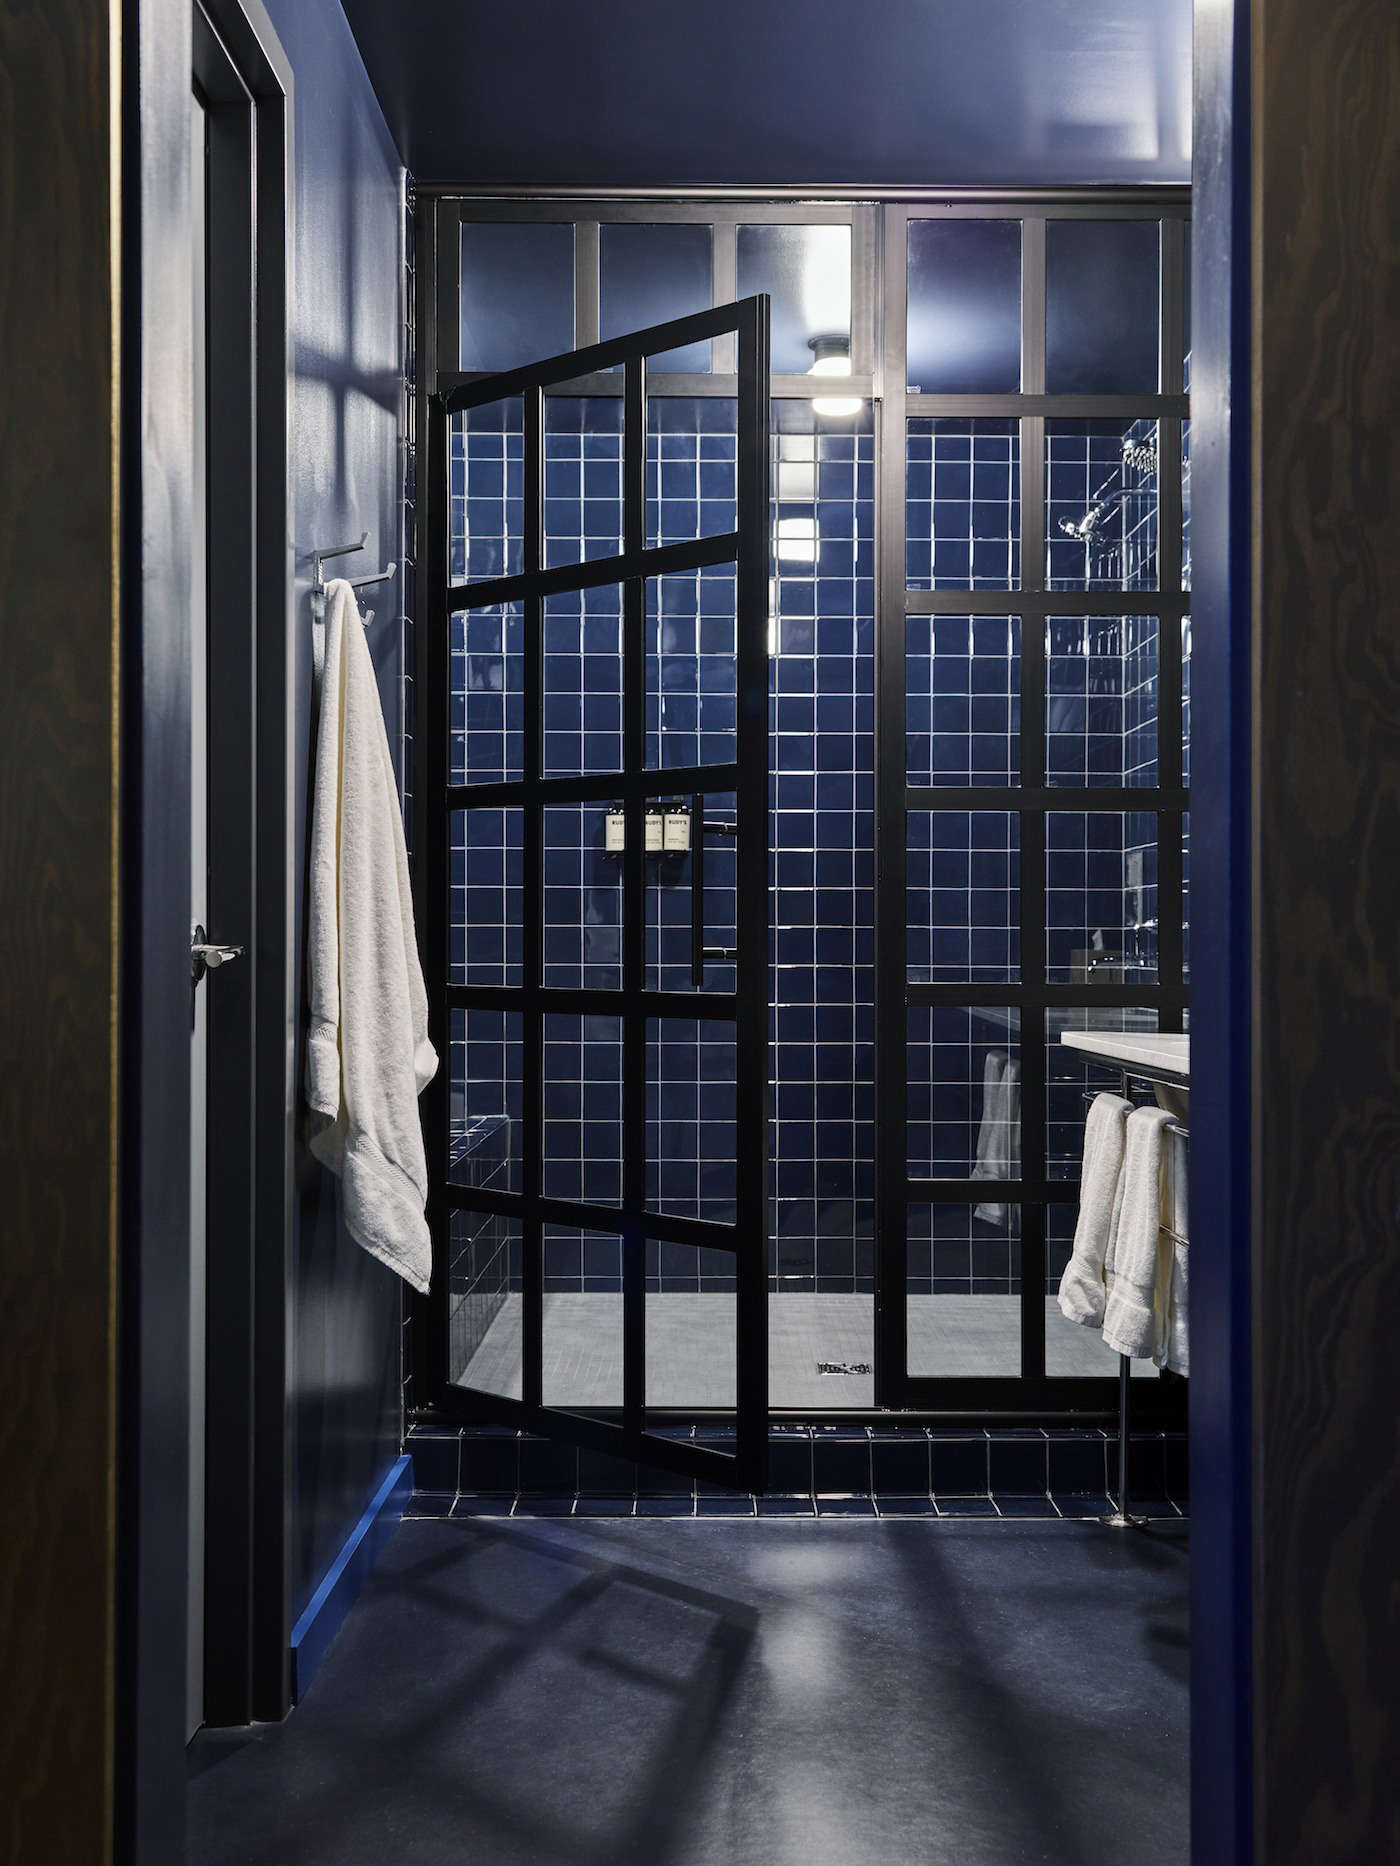 Shower Stall at the Ace Hotel Chicago